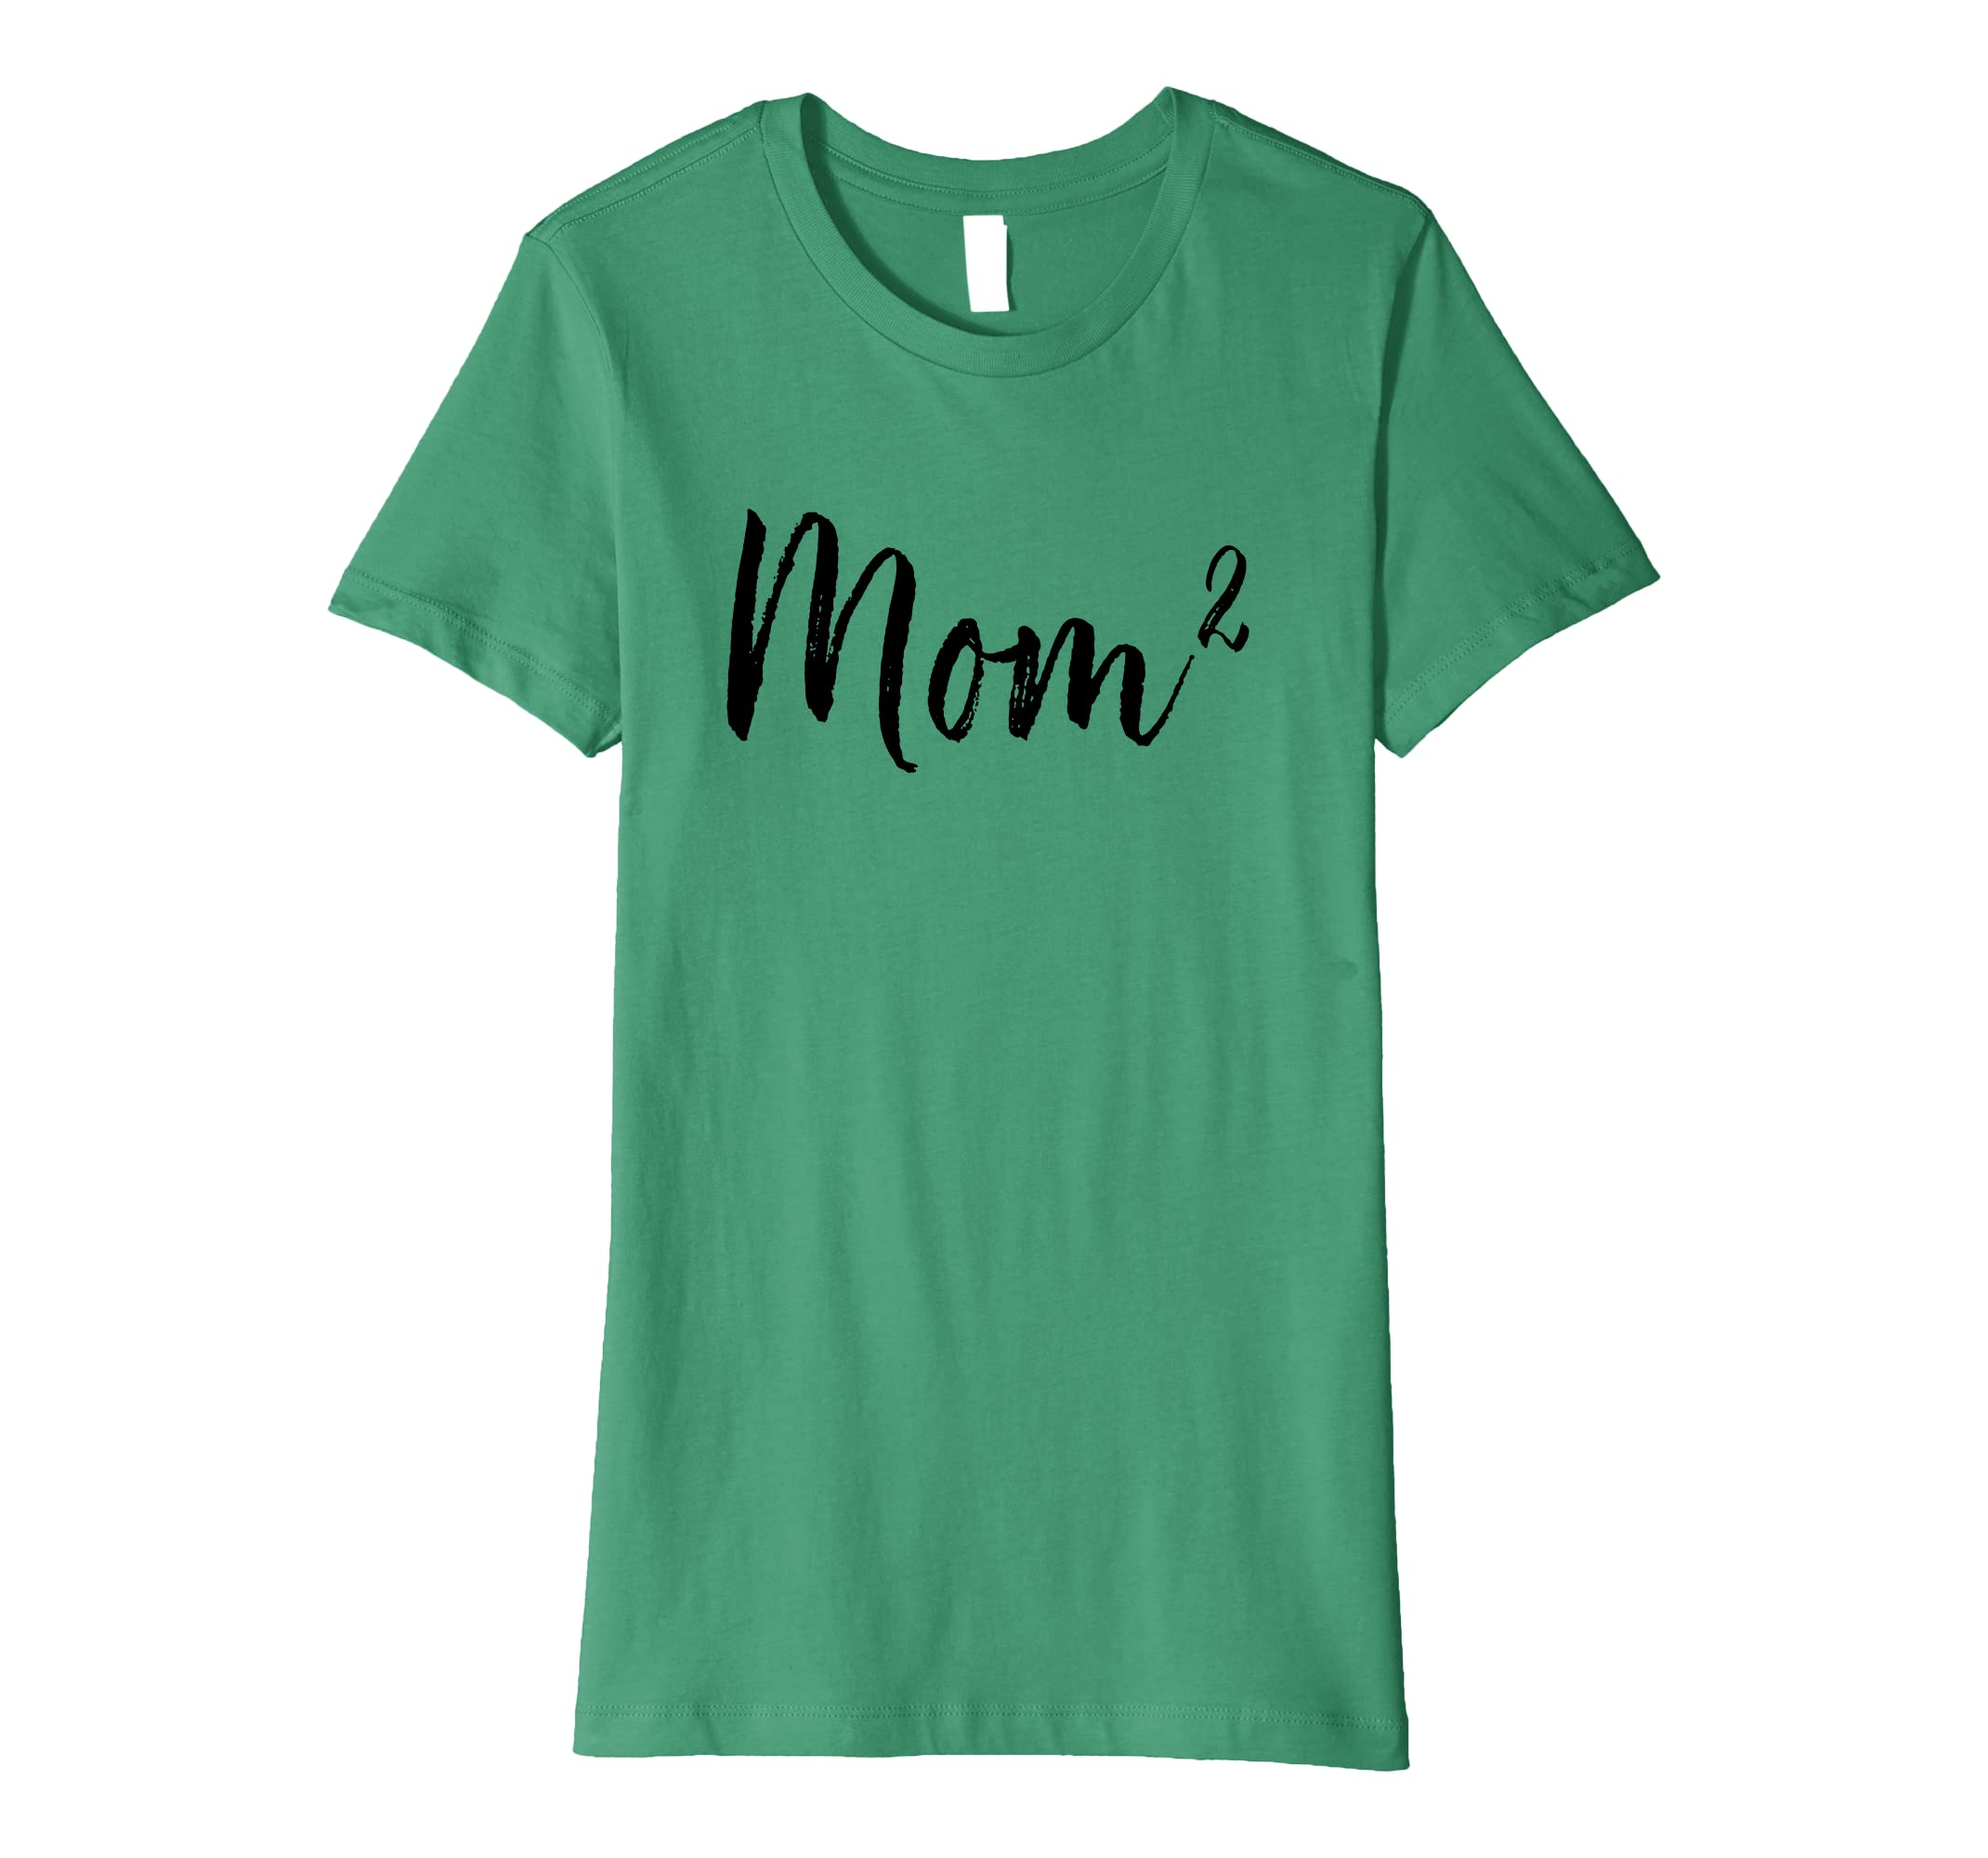 0b25cc7bac354 Amazon.com: Mom Squared Shirt, Mom of 2, Mama of 2, Mothers Day Gifts:  Clothing